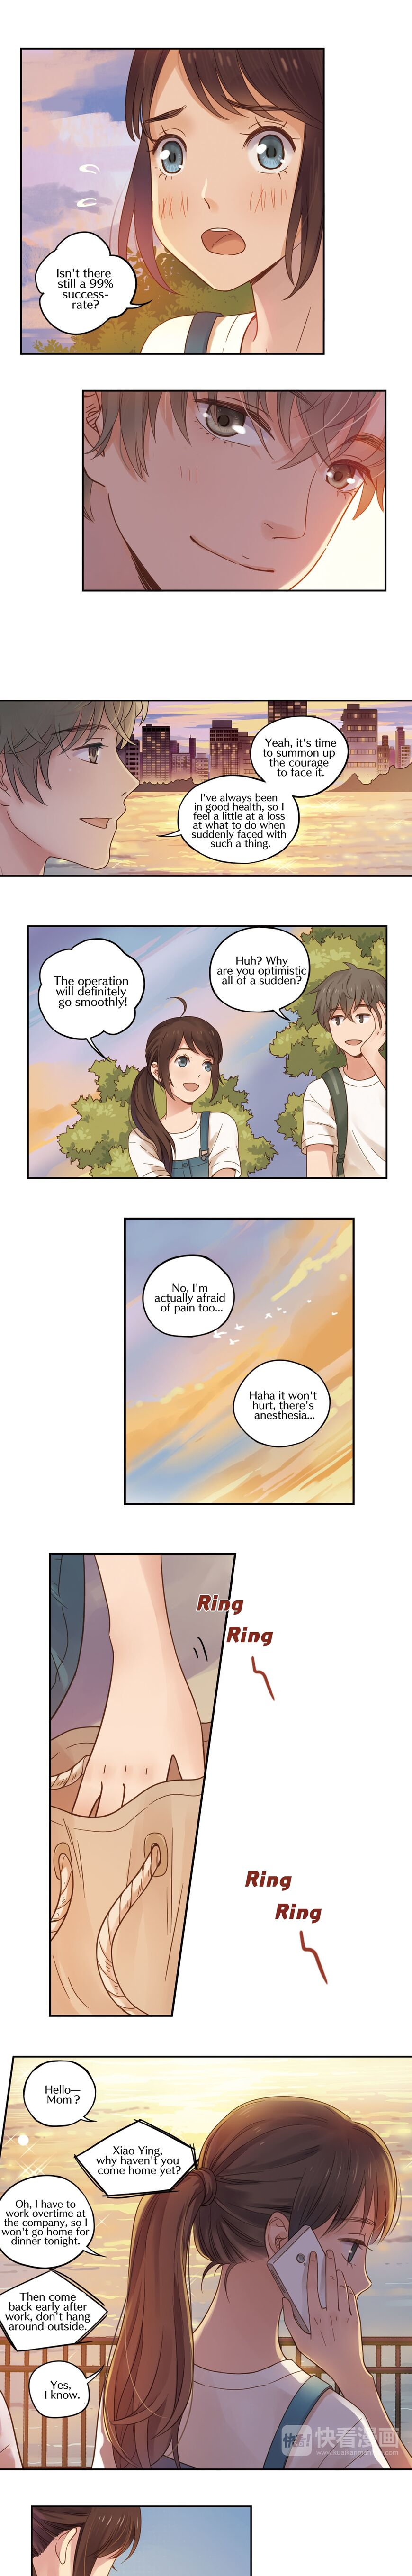 One Day(Huo Mo) 5 Page 1